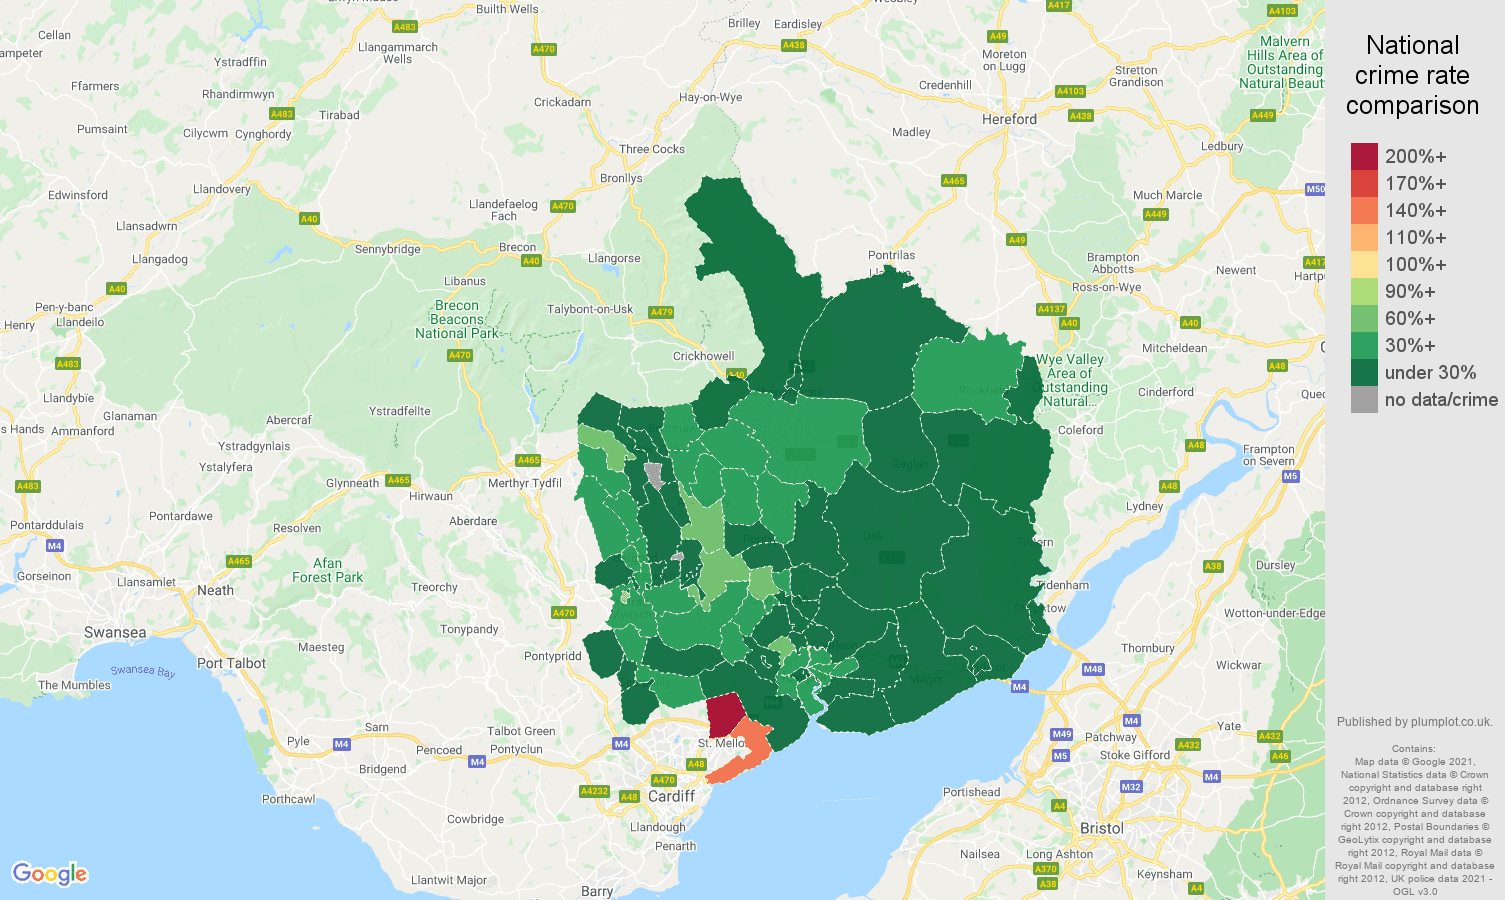 Gwent criminal damage and arson crime rate comparison map